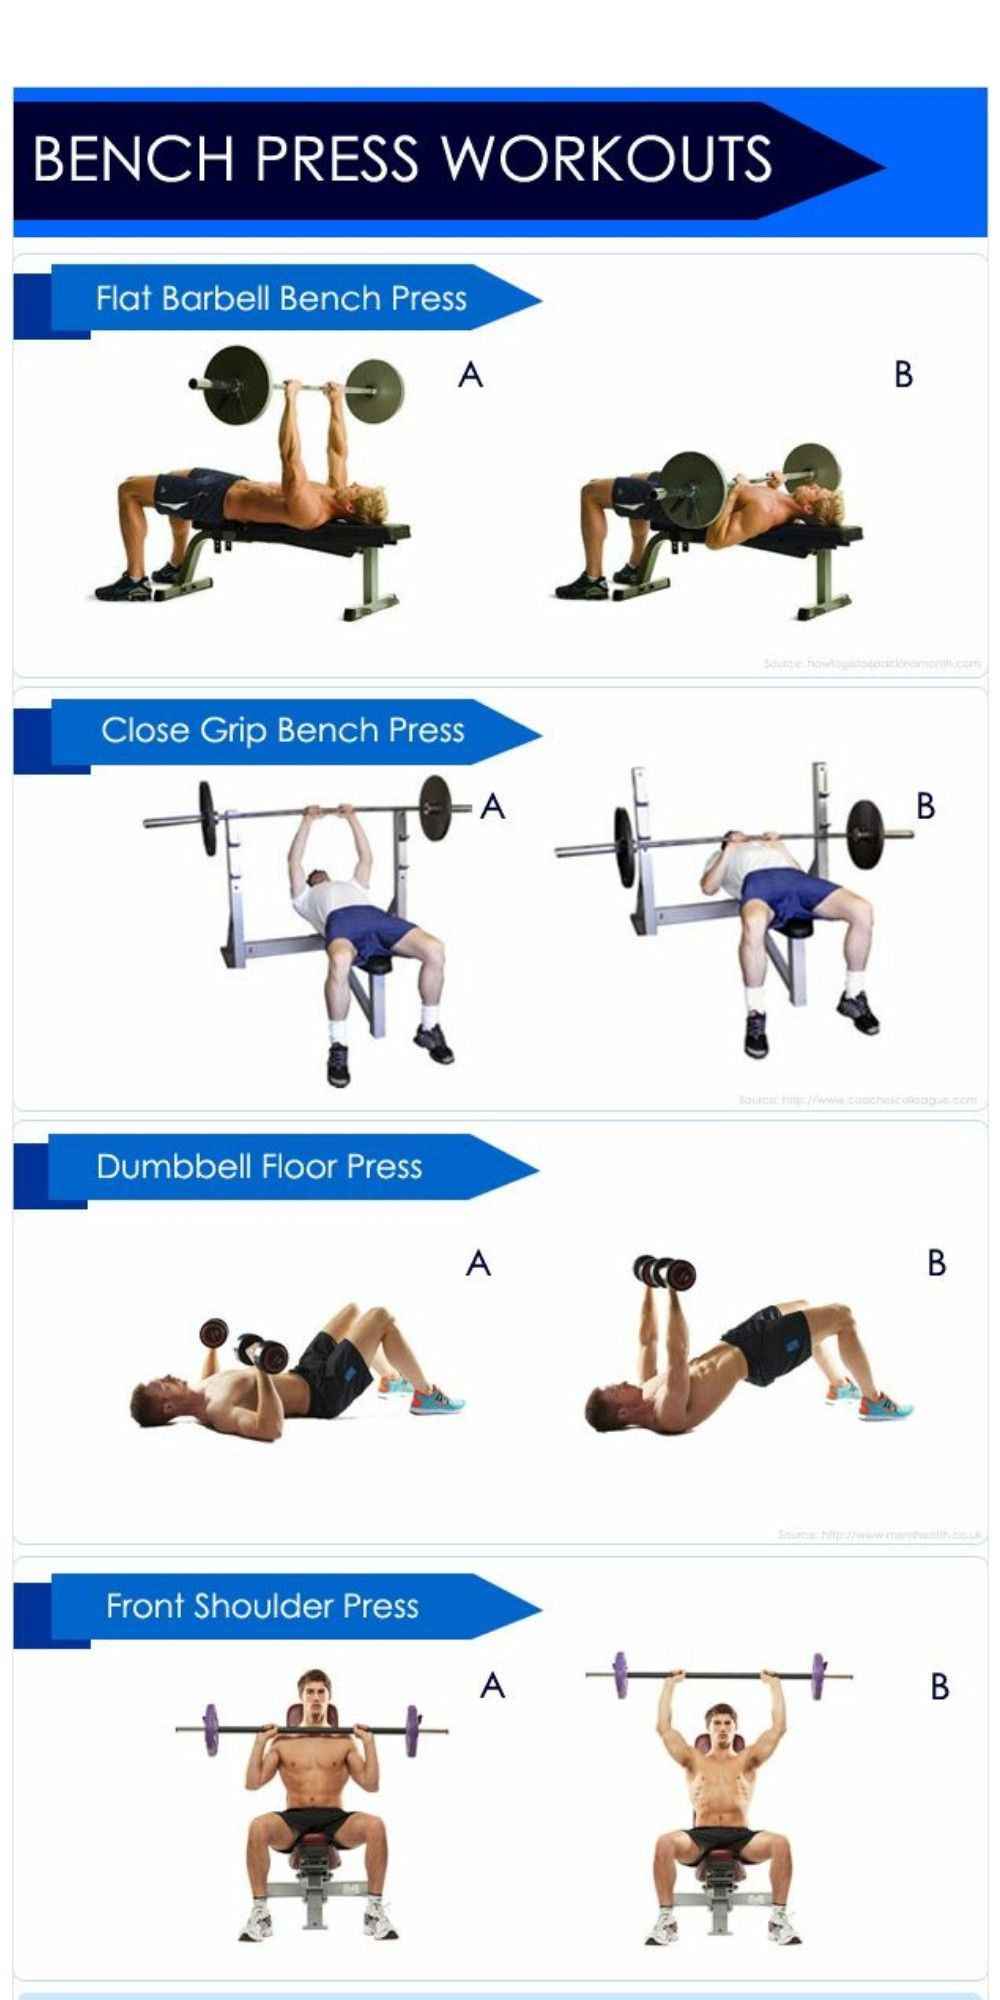 Bench press workout exercises with bench workout